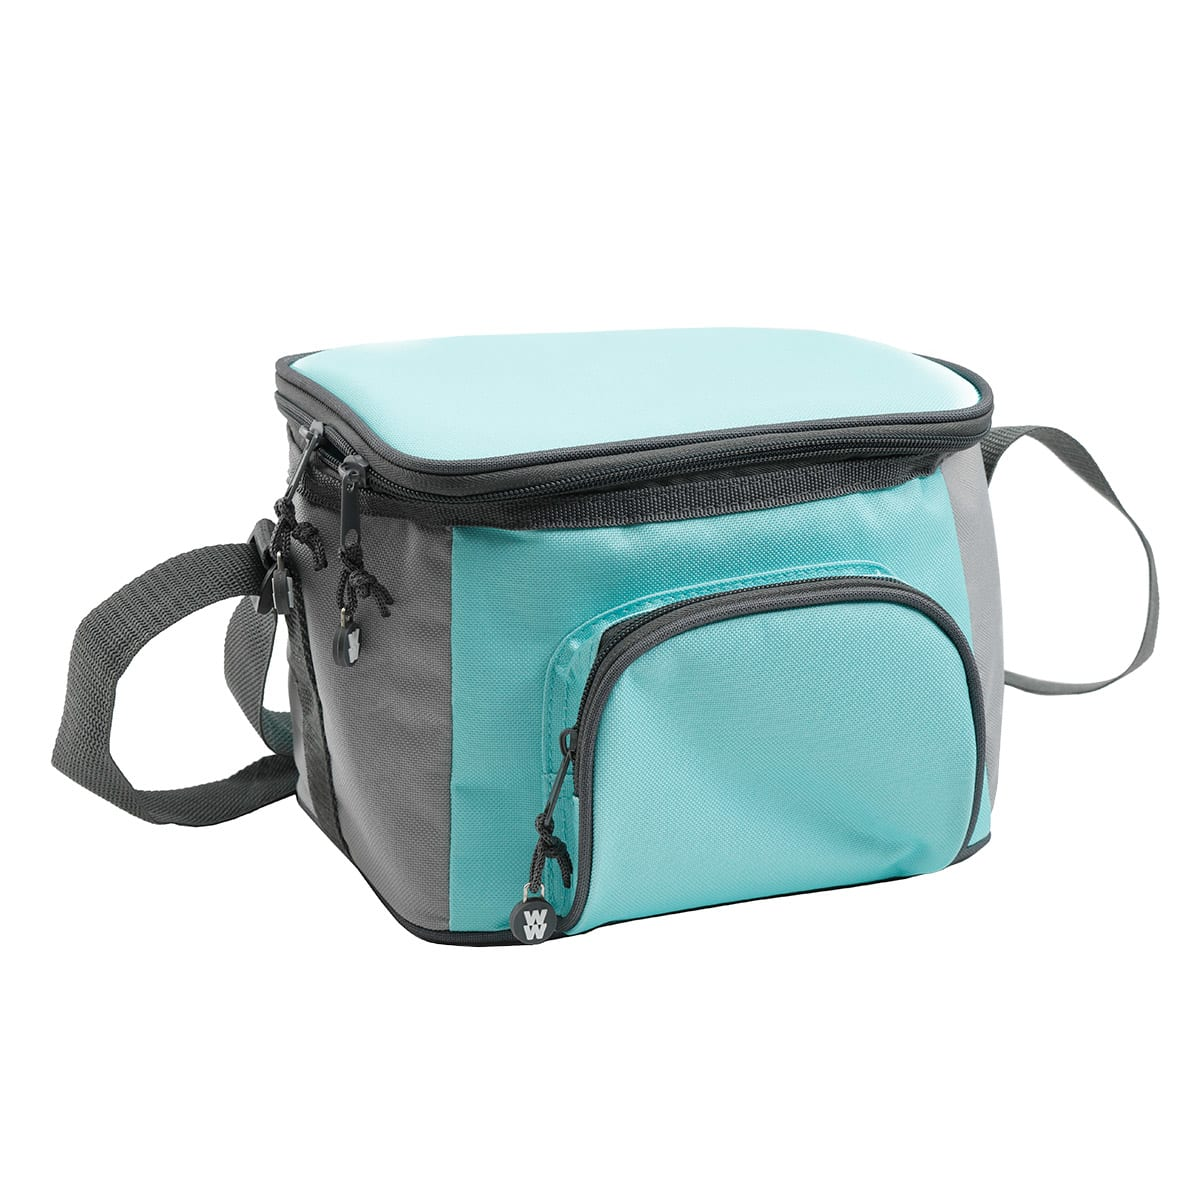 """3-piece Insulated Lunch Tote with 2 microwaveable and dishwasher safe Containers, Comes with cooler bag and 2 x 6.75-cup (1.6L) containers, Measures 8.5"""" x 6.5"""" x 6.5"""""""